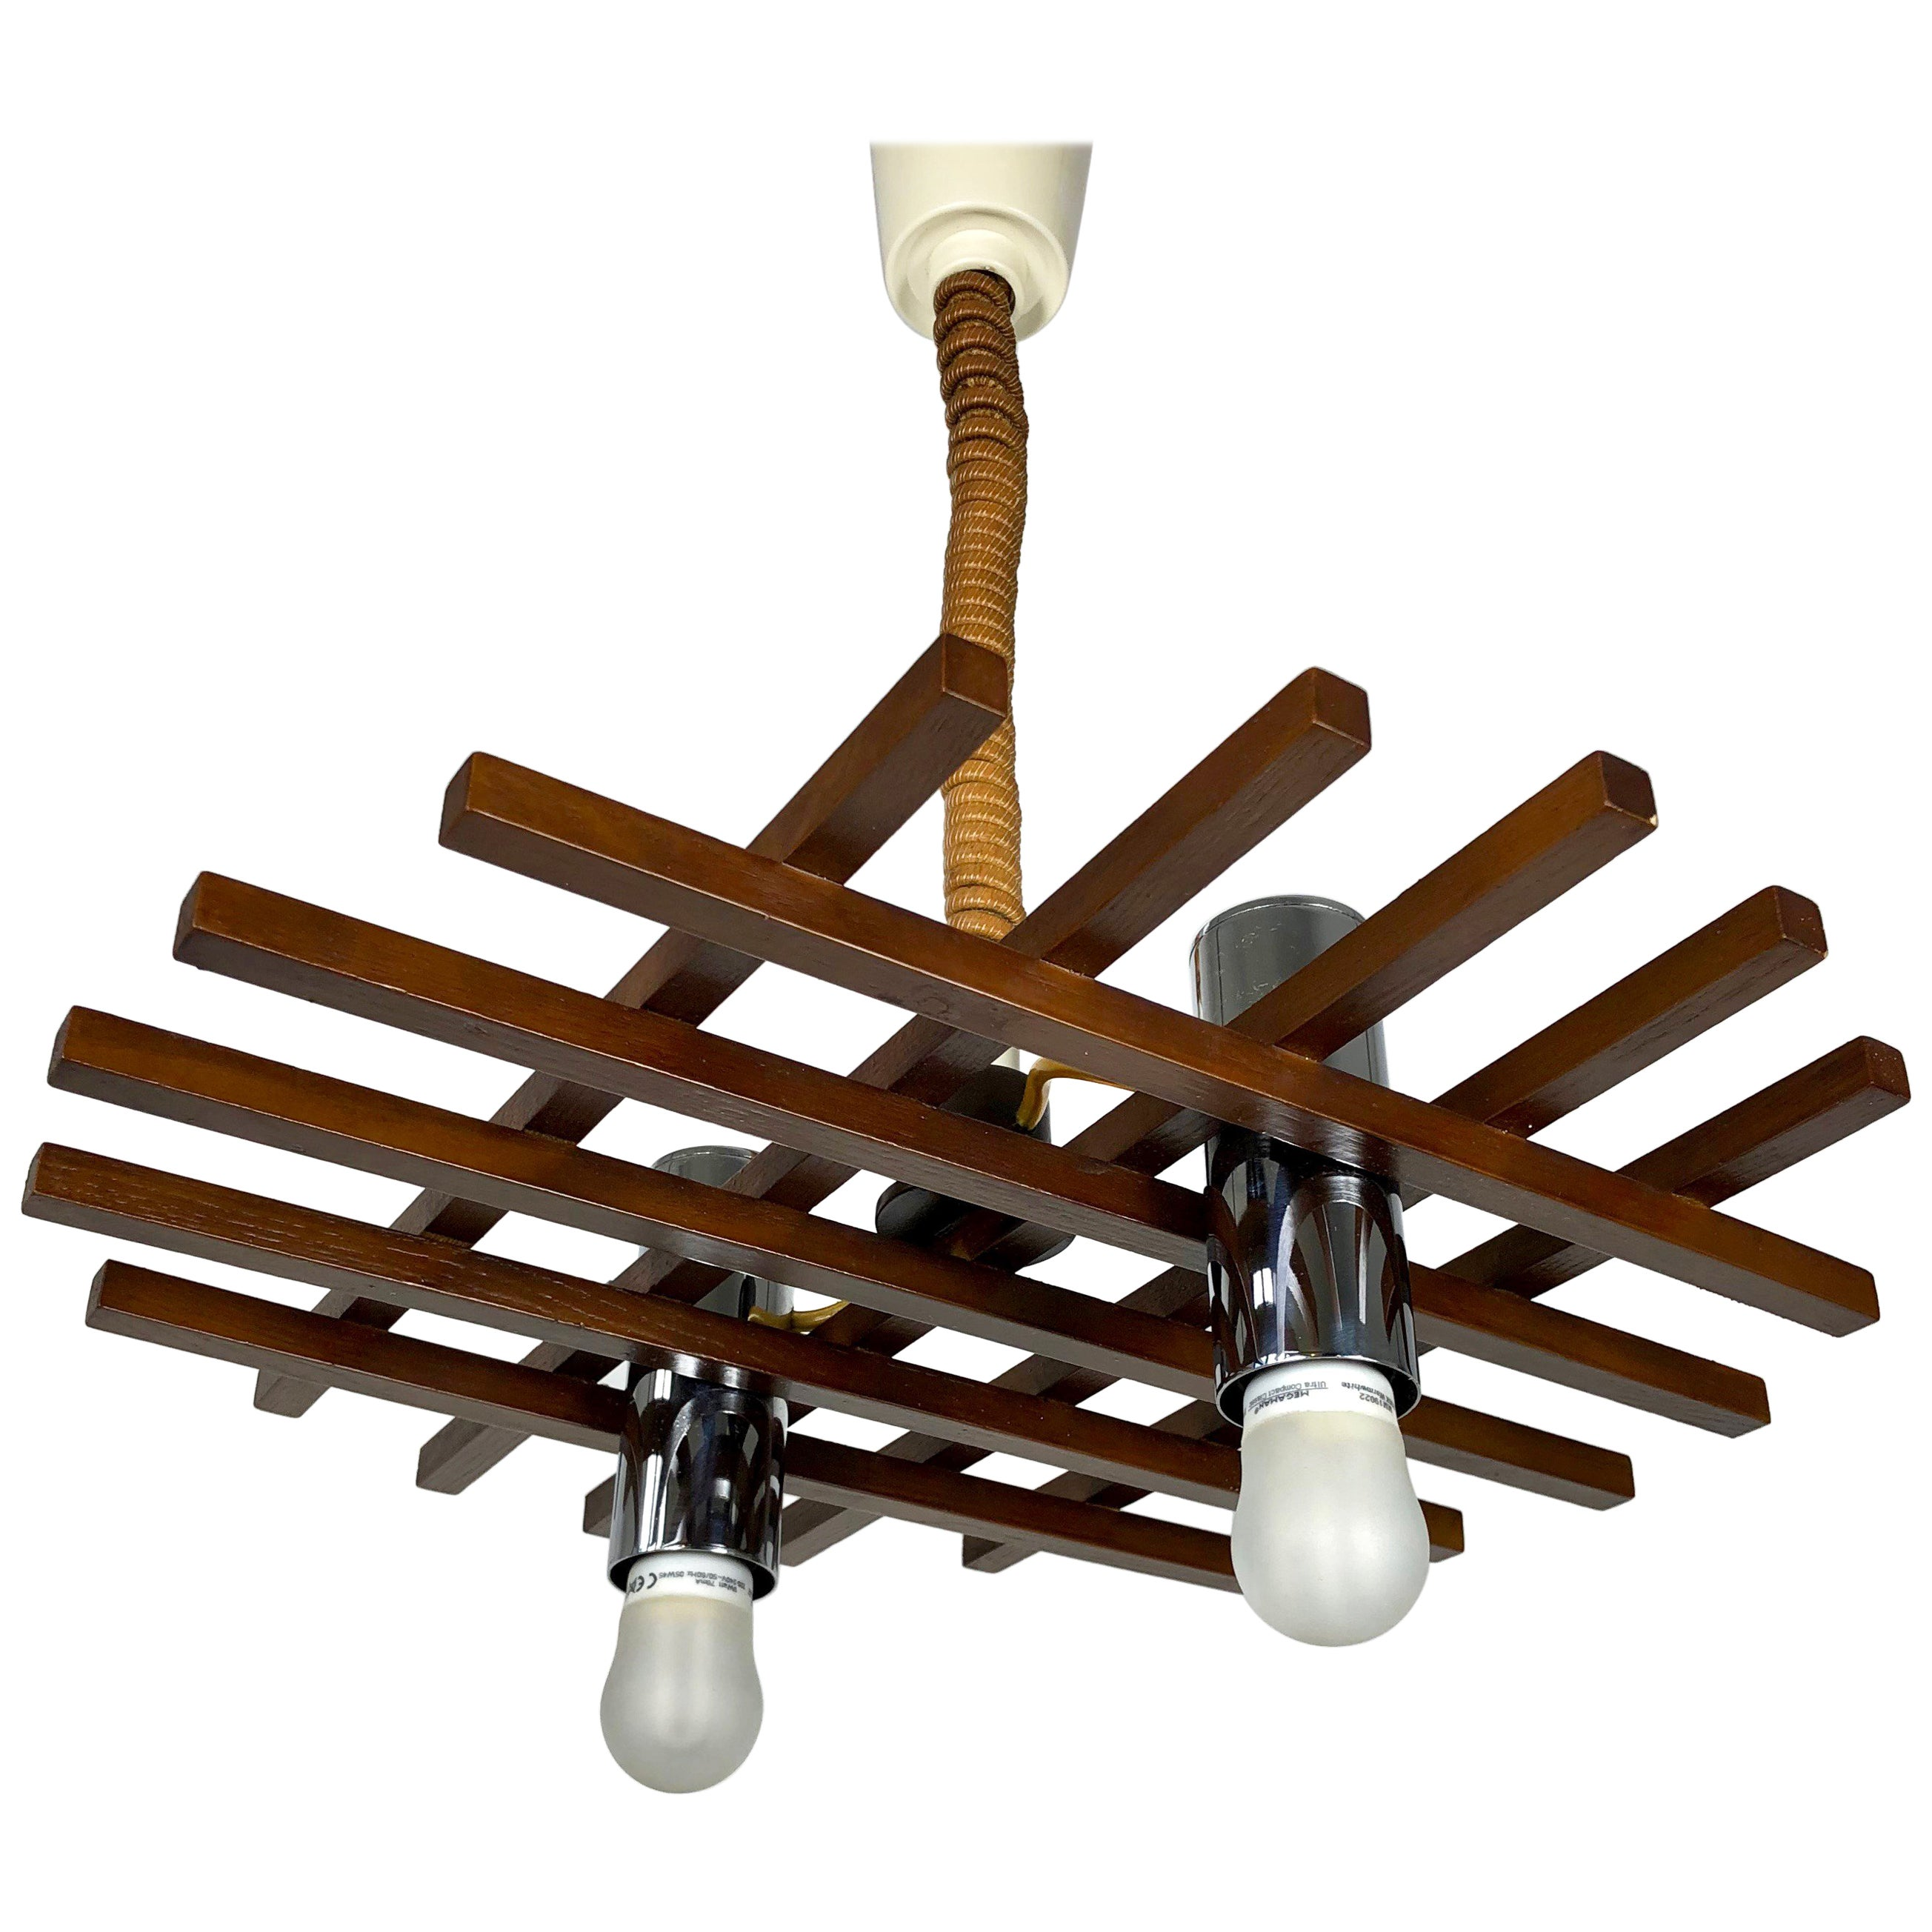 Ceiling Chandelier Two Lights in Teak by Esperia, Italy, 1960s